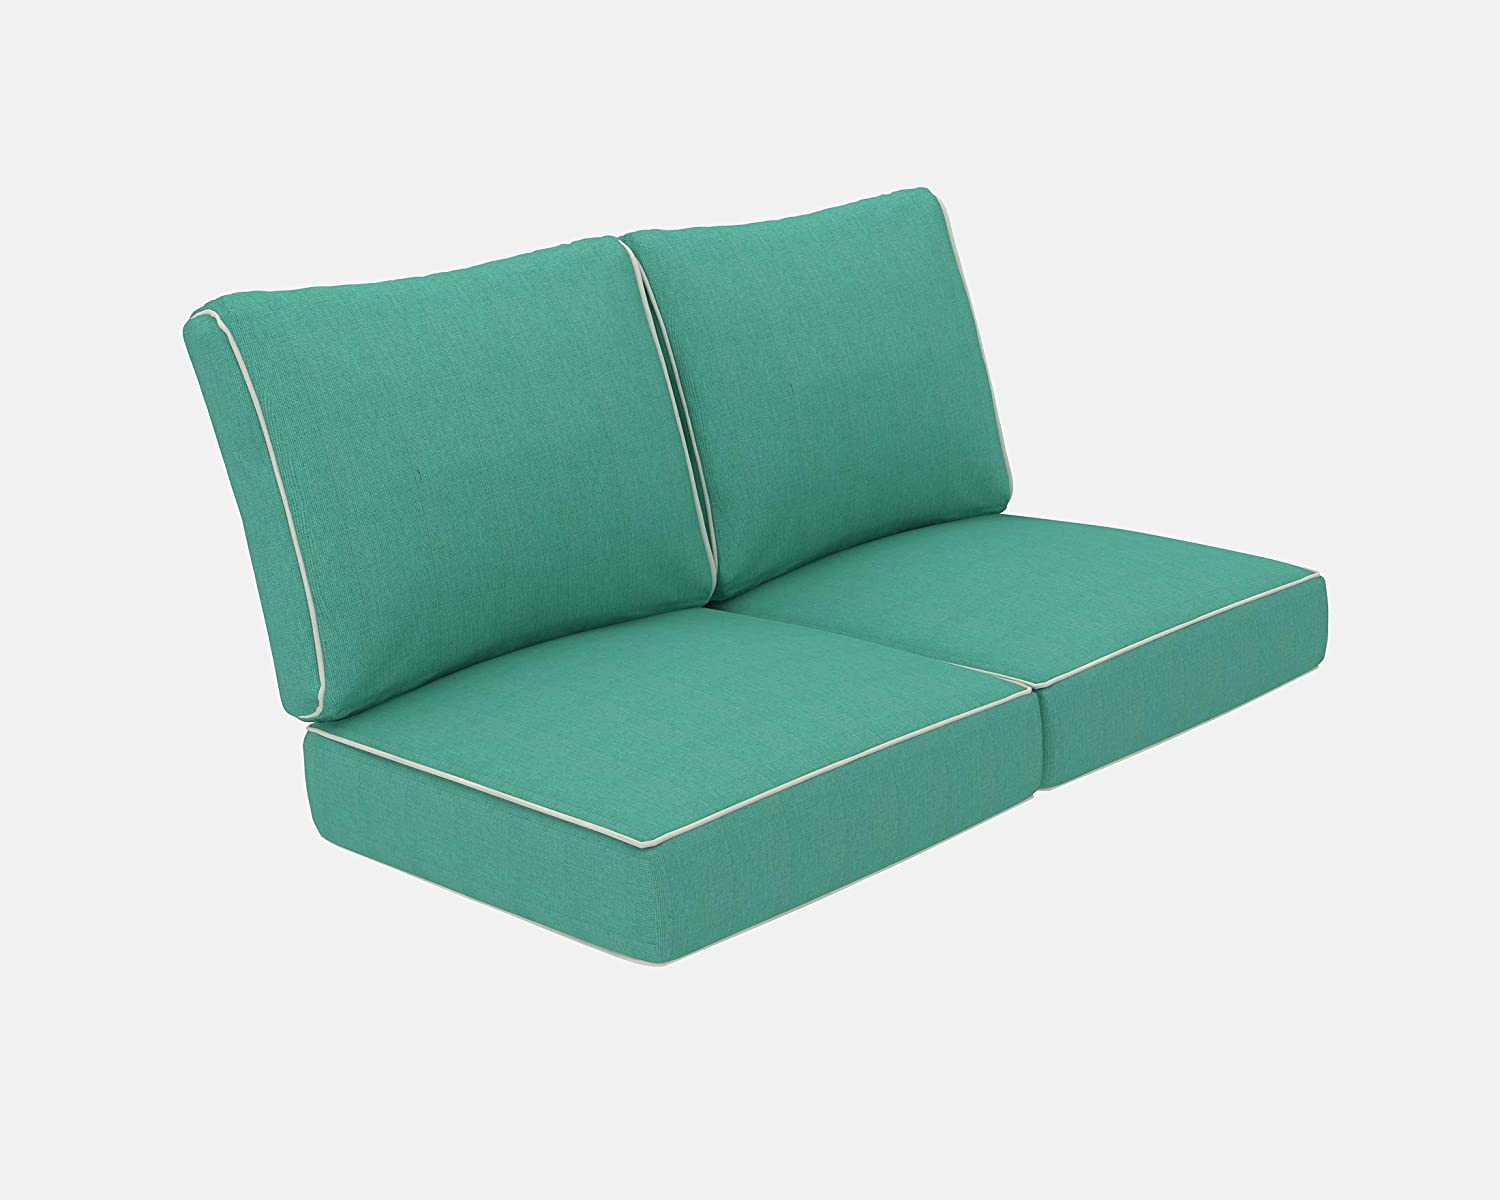 Living Express Patio Furniture Cushion, Outdoor Loveseat Cushion, Deep Seating Seat/Back Cushion Set, Replacement Cushions Set, Teal Blue